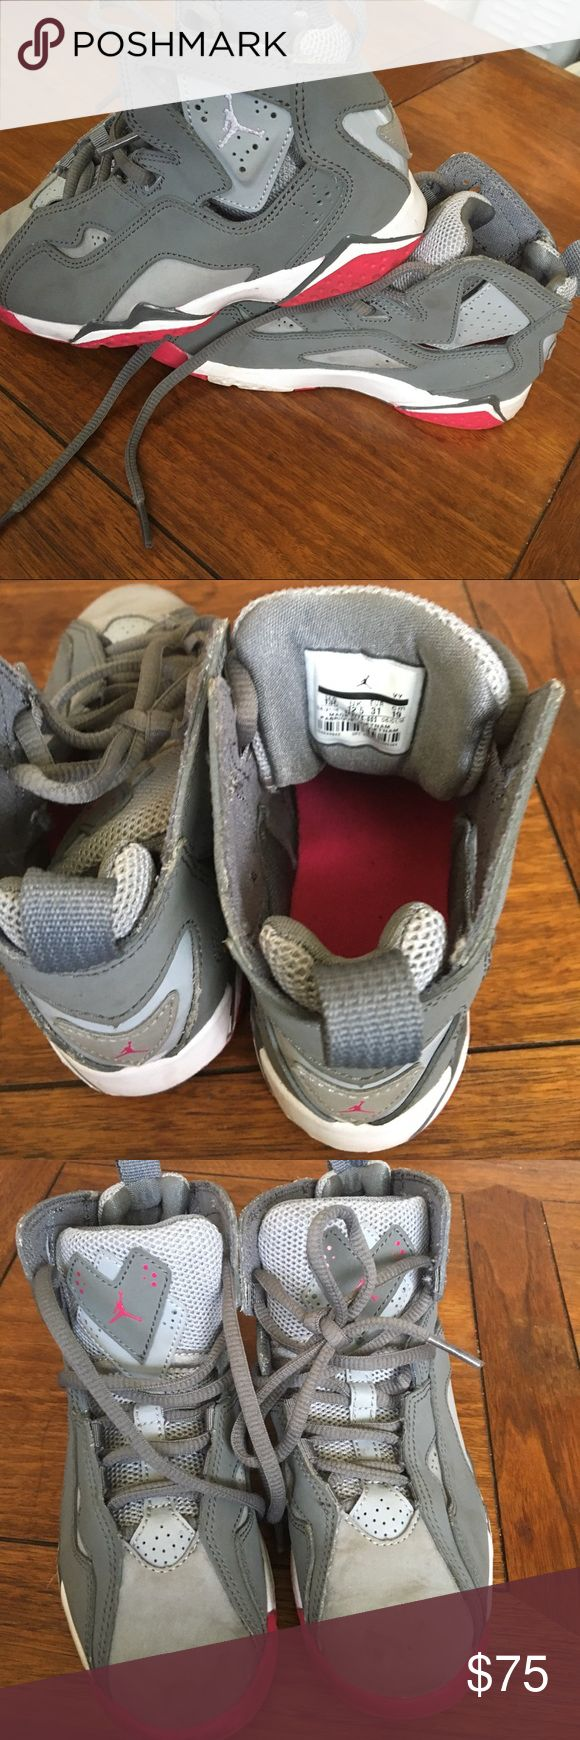 Kid Jordan Sneakers Gray great condition SZ 13❤️❤️ This is a kids unisex Jordan sneakers in great condition SZ 13 there is some soiled area on the front but it should be a easy clean with some warm soapy water. Will accept a reasonable offer Jordan Shoes Sneakers